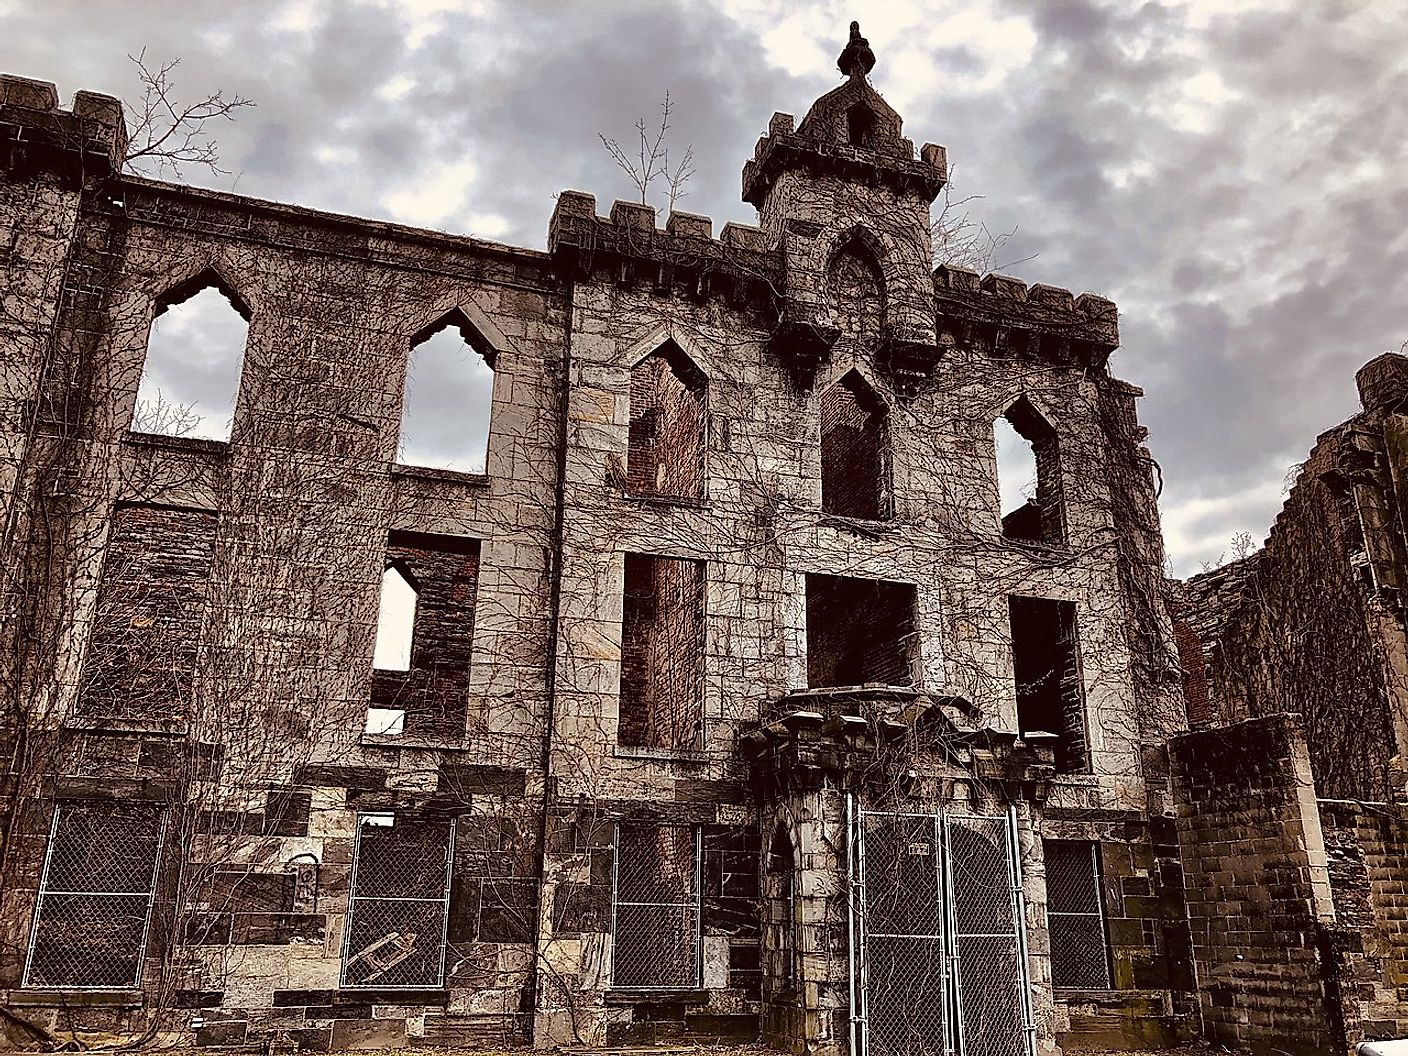 The Renwick Smallpox Hospital on Roosevelt Island in April 2019. Image credit: Chris6d/Wikimedia.org